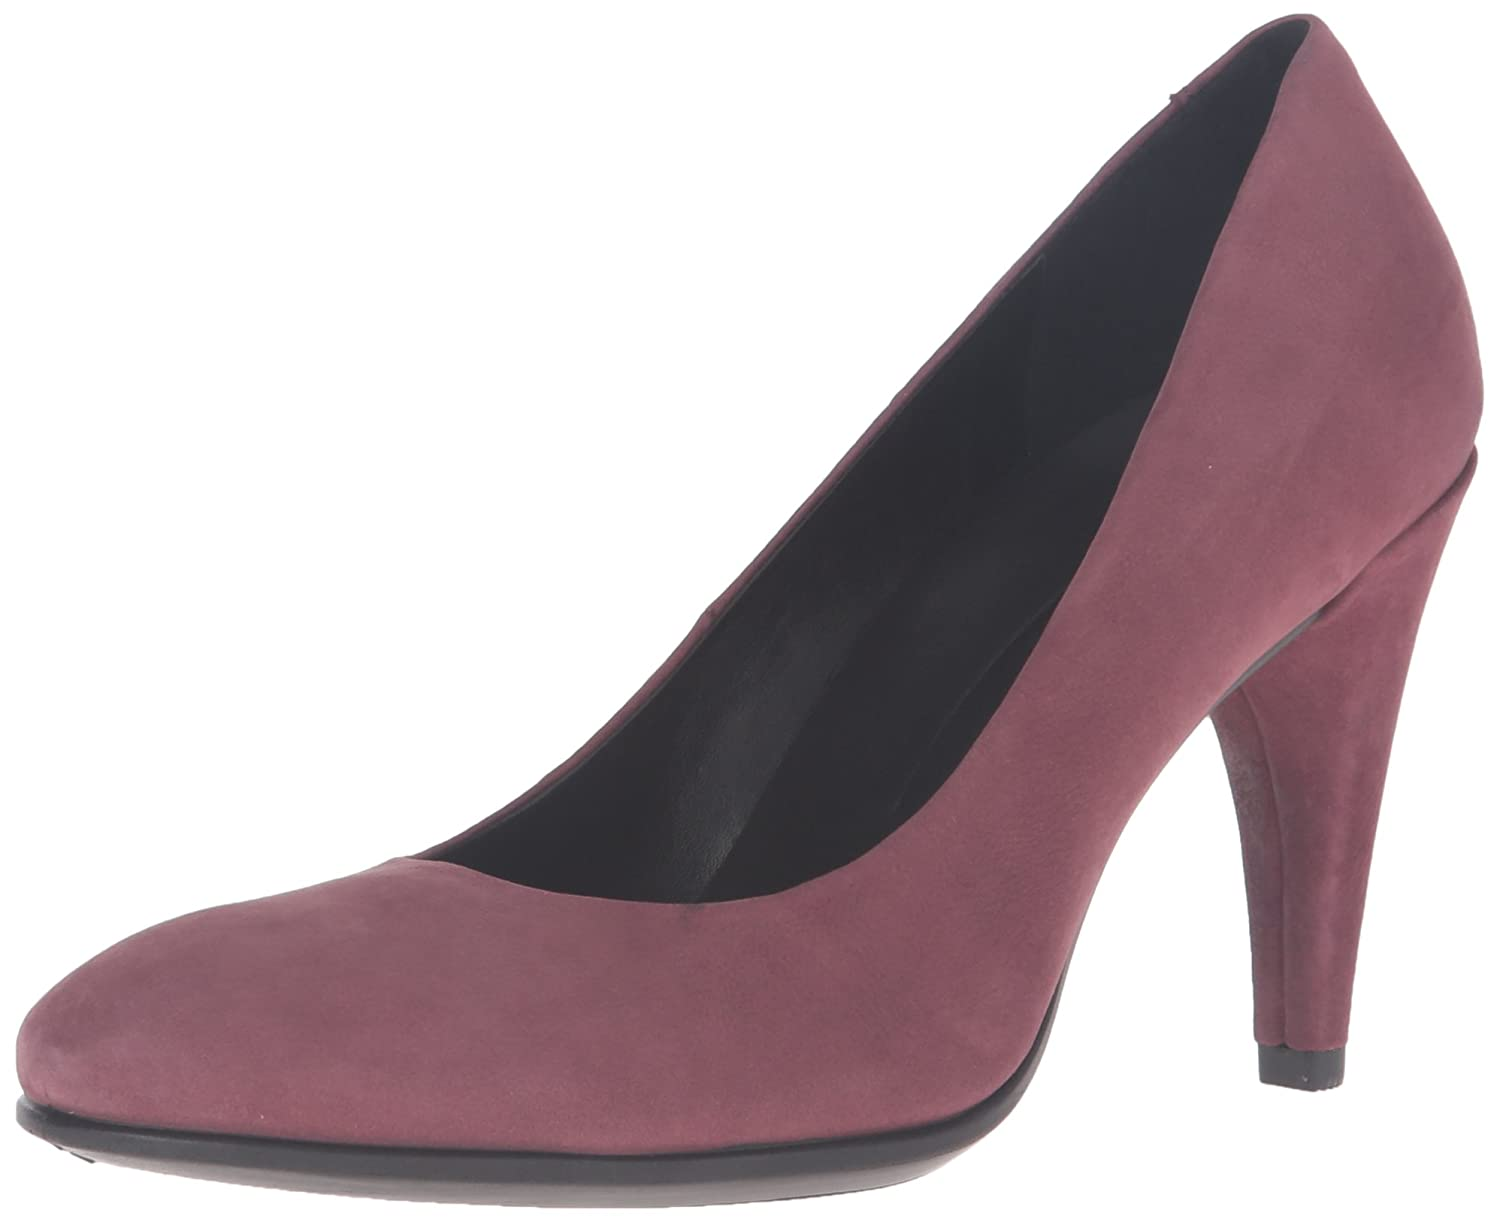 Bordeaux ECCO Women's Shape 75 Sleek Dress Pump